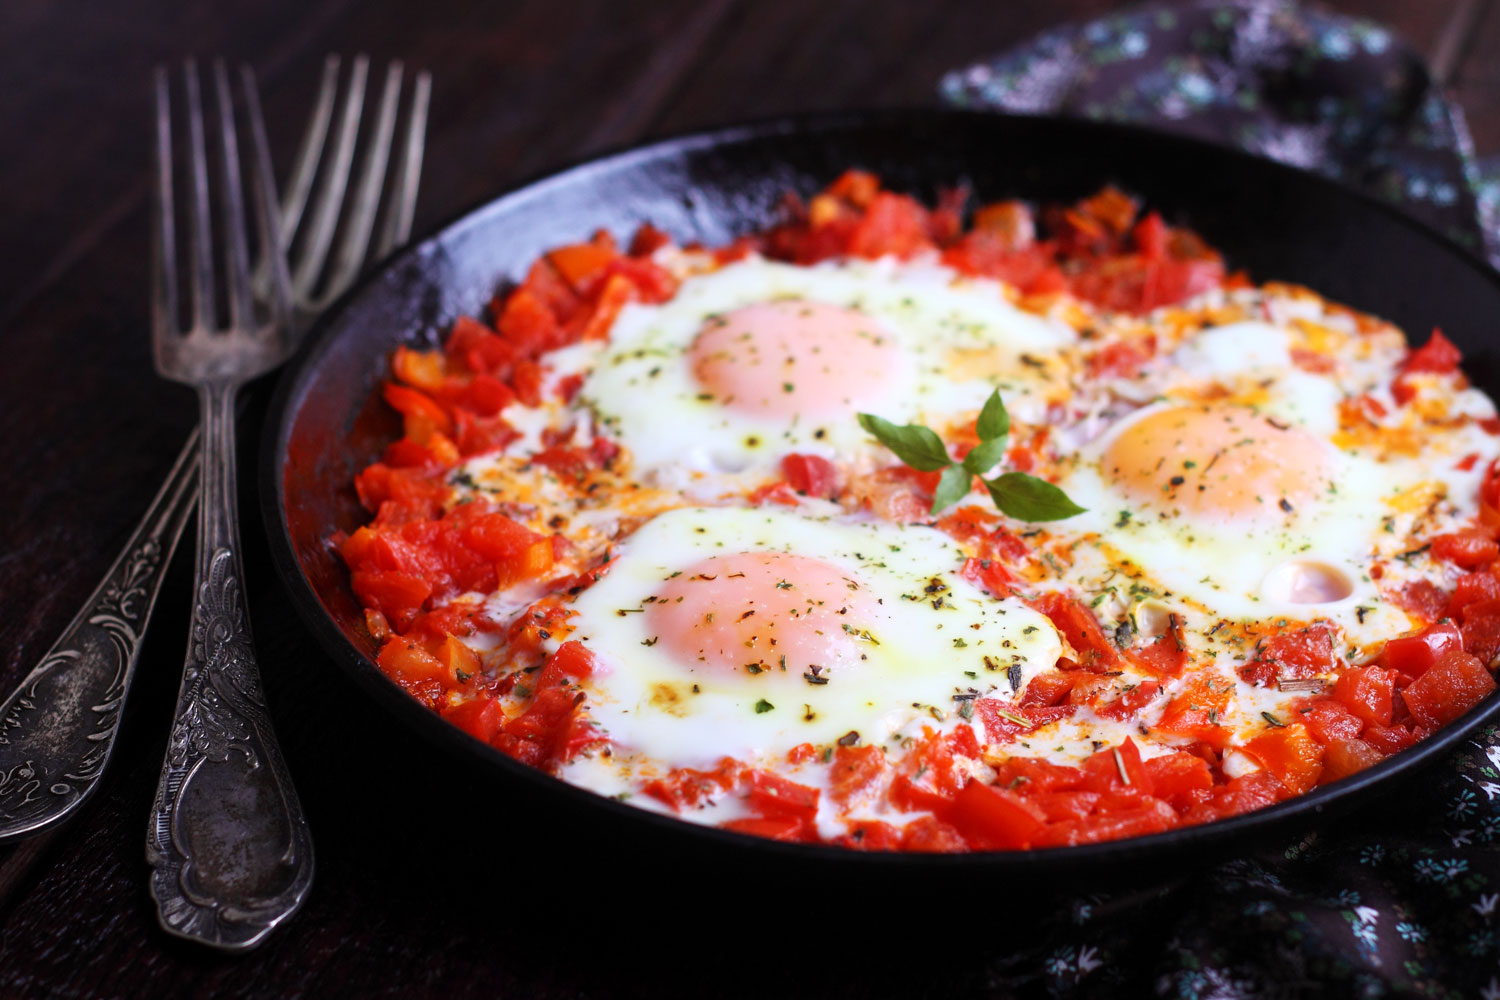 A Dish of Shakshuka